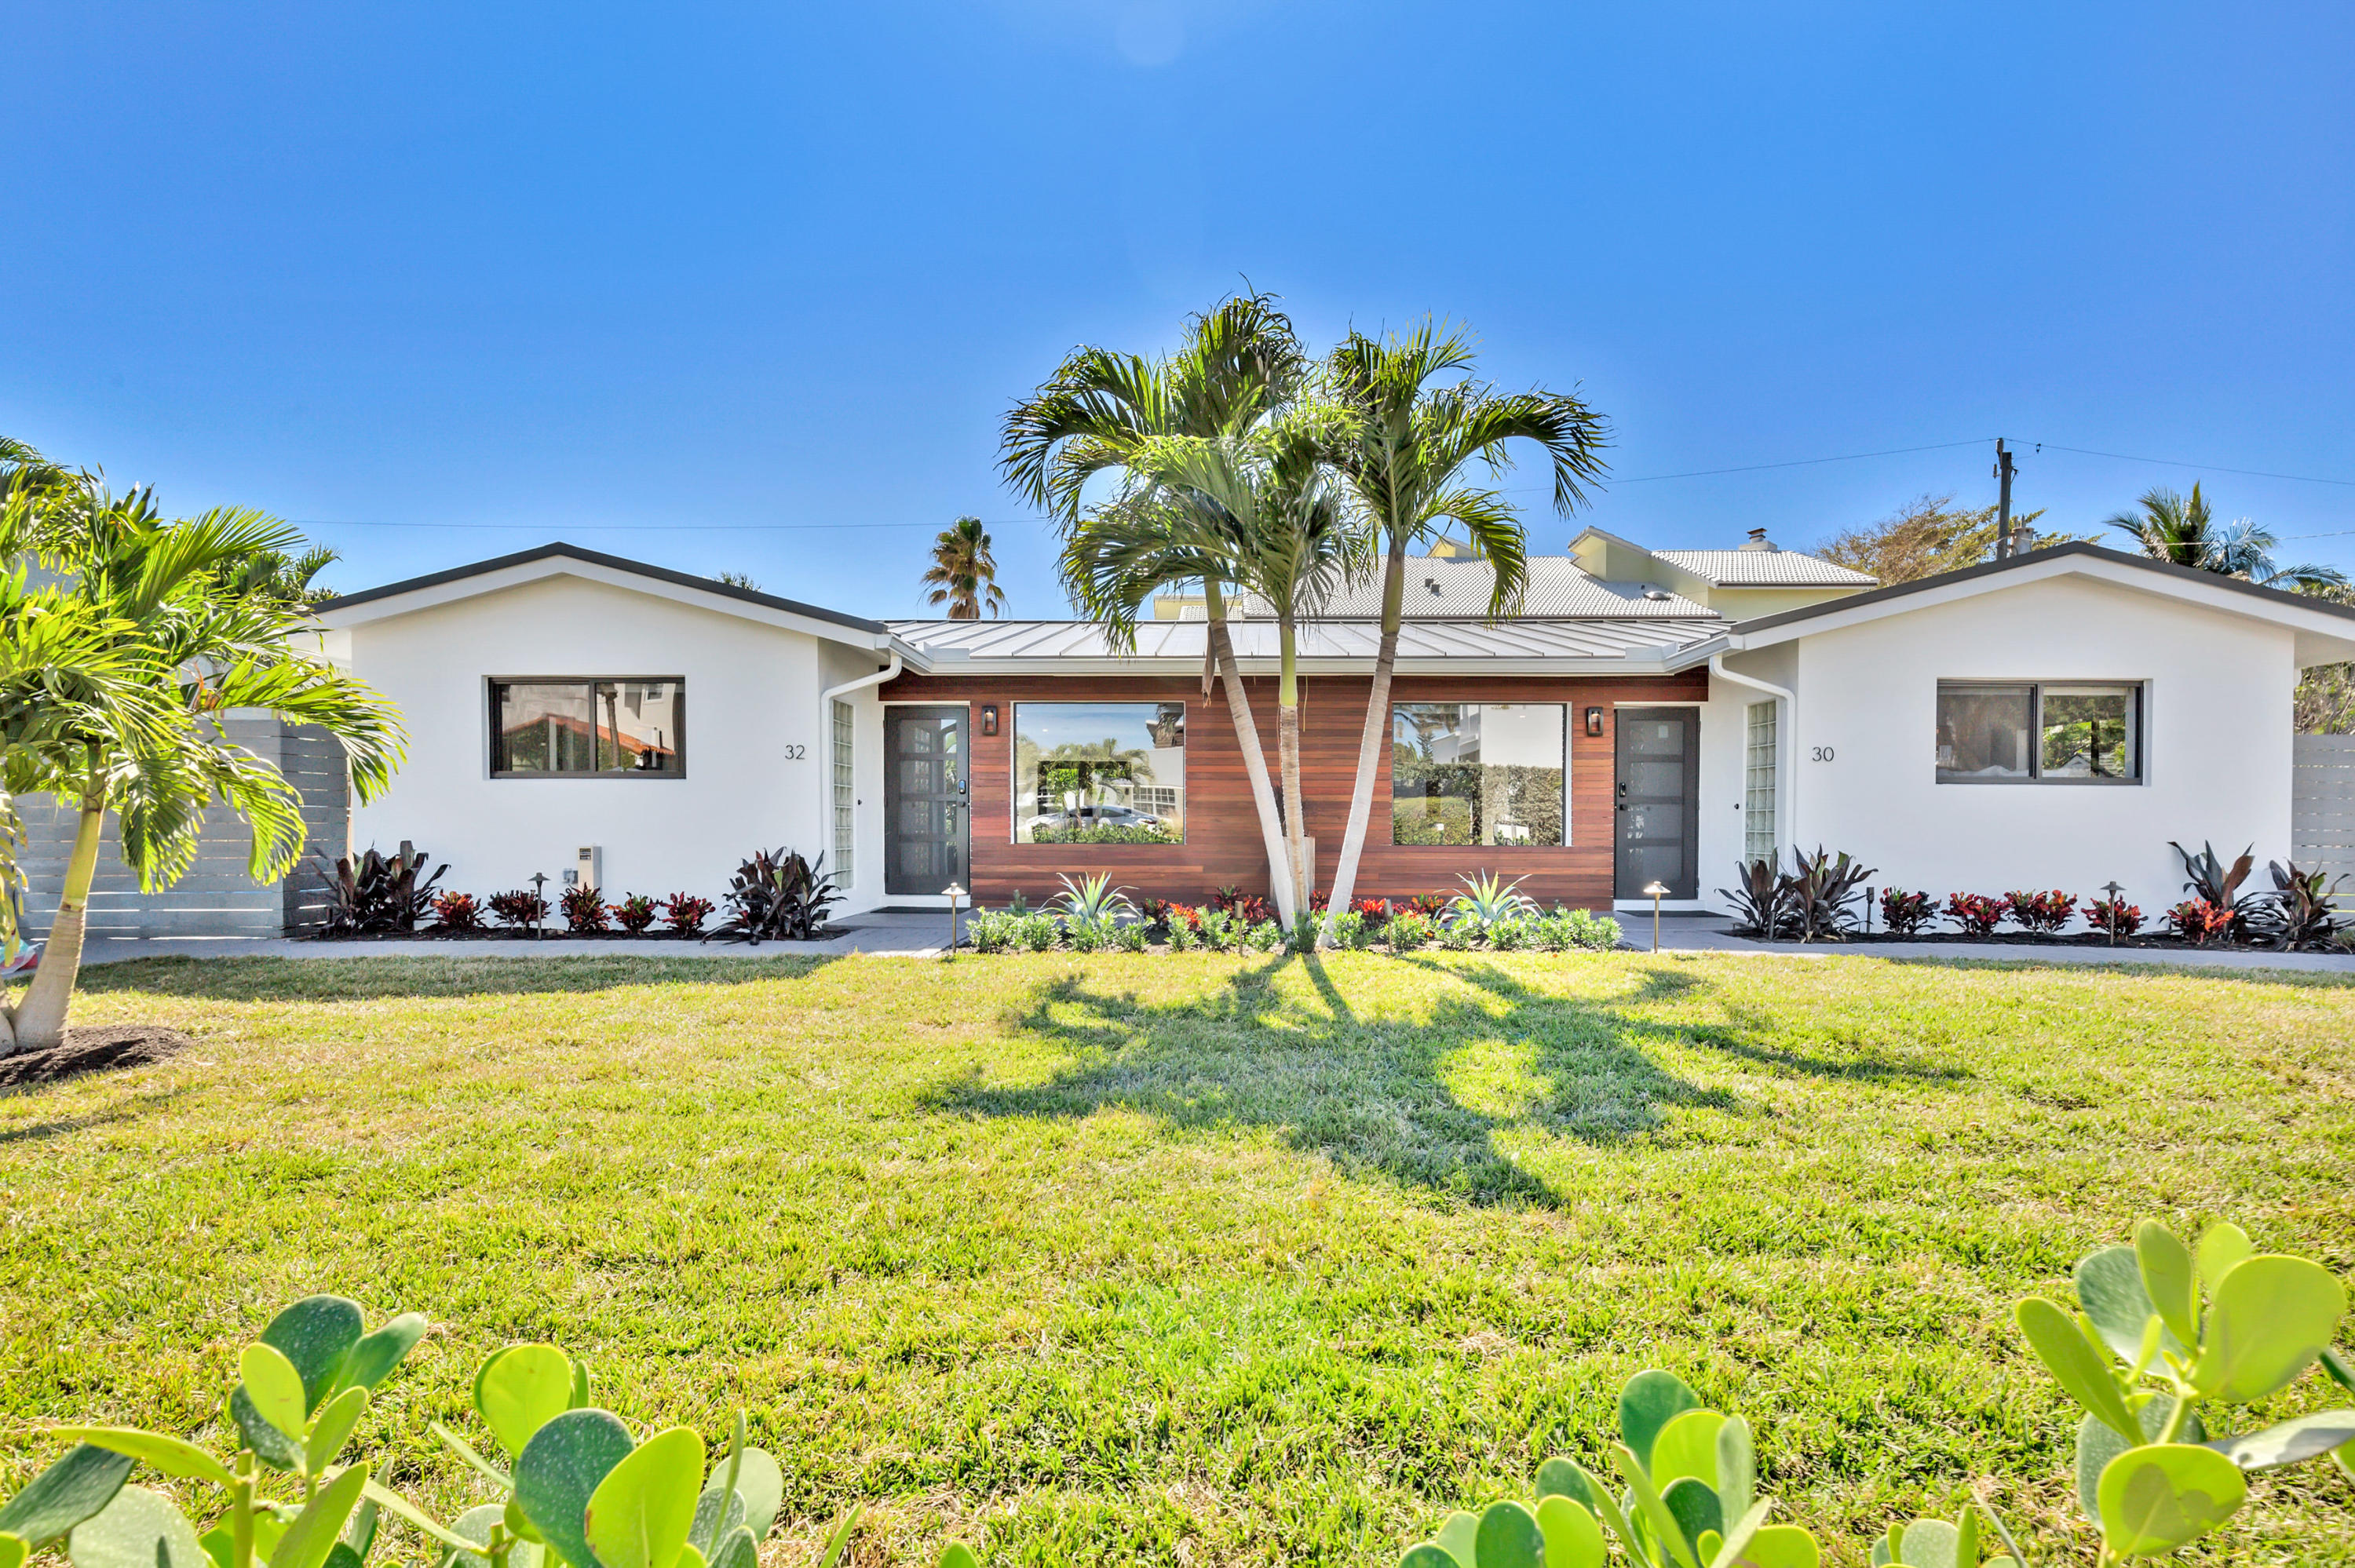 30  Hersey Drive  For Sale 10690453, FL